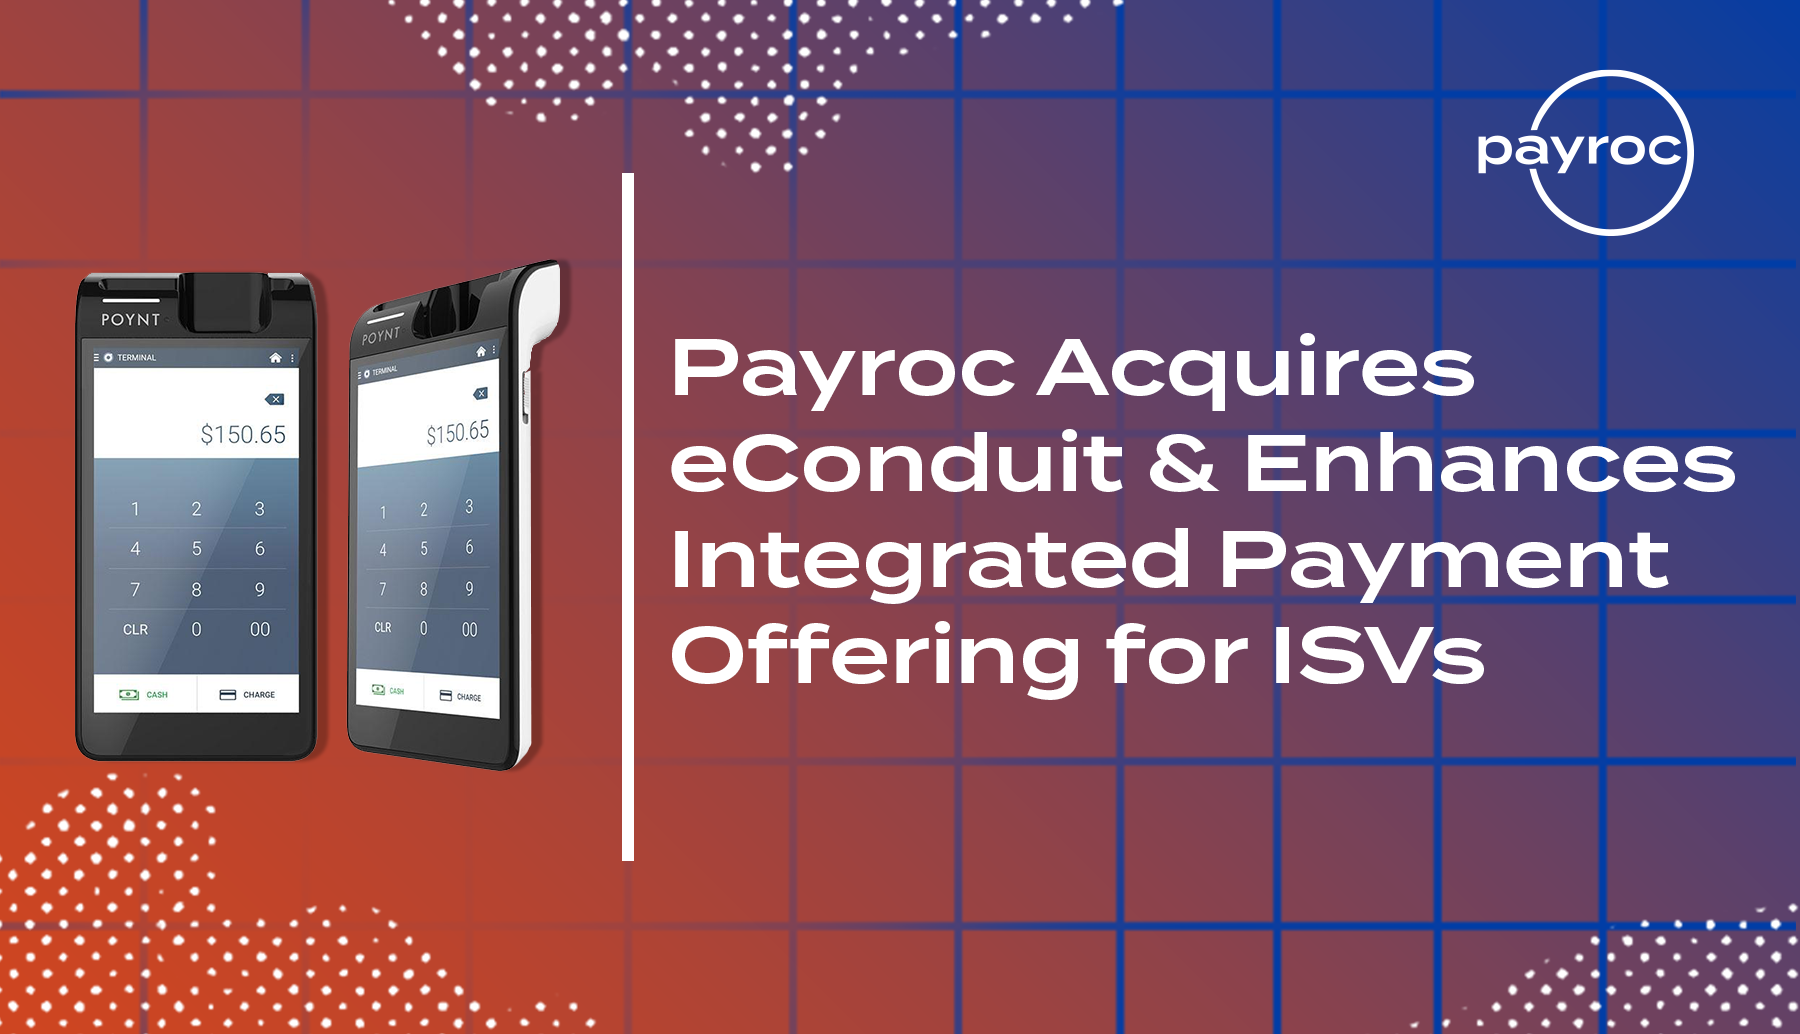 payroc acquires eConduit